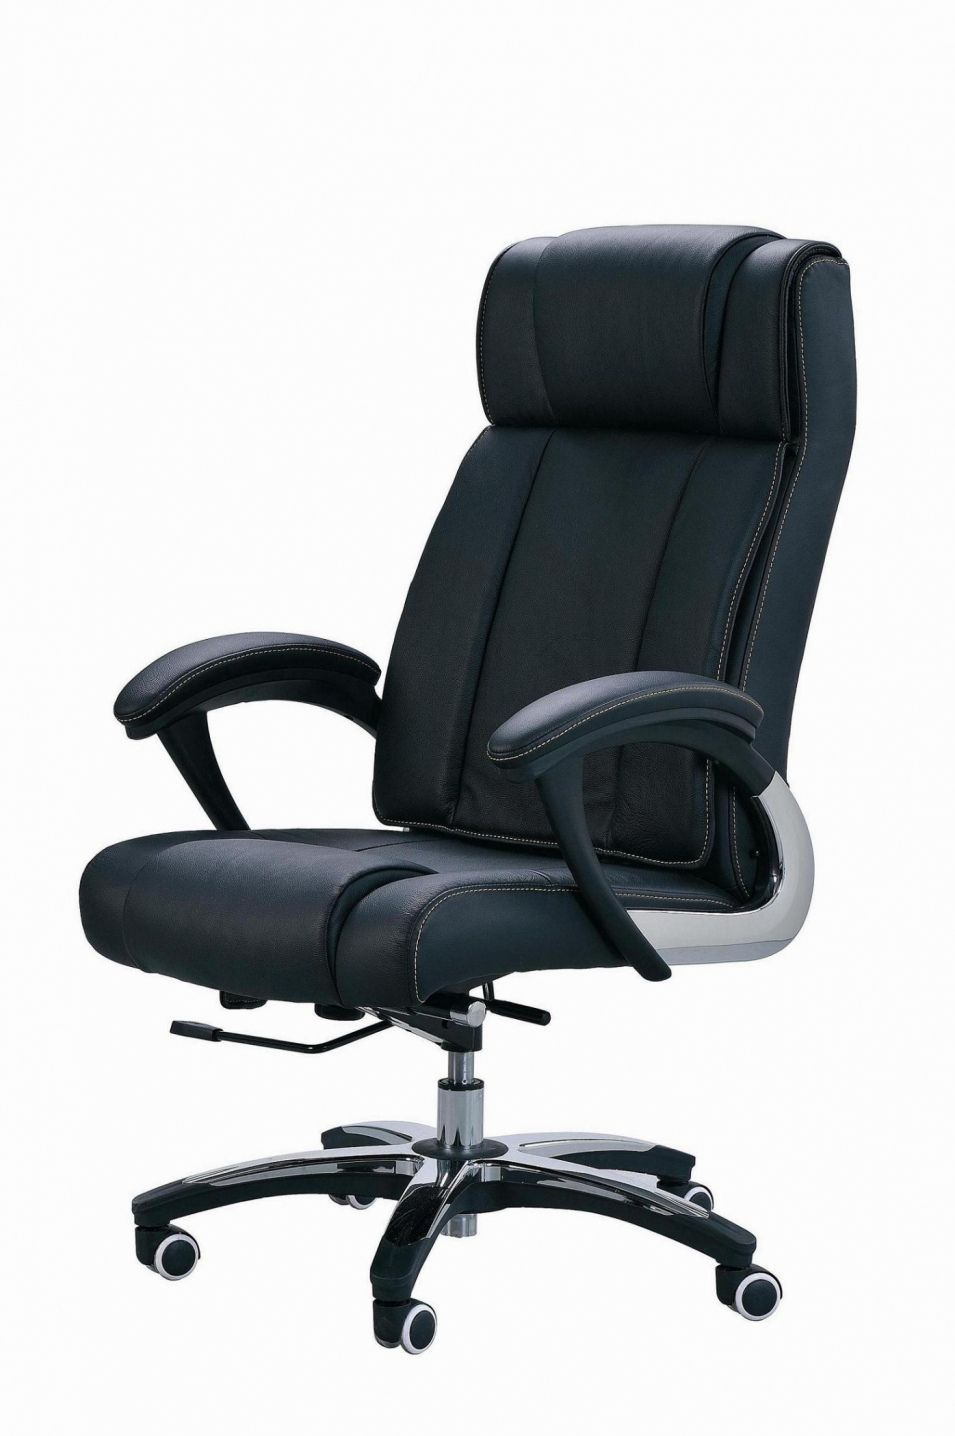 2019 Ebay Office Chairs Best Modern Furniture Check More At Http Steelbookreview 2018